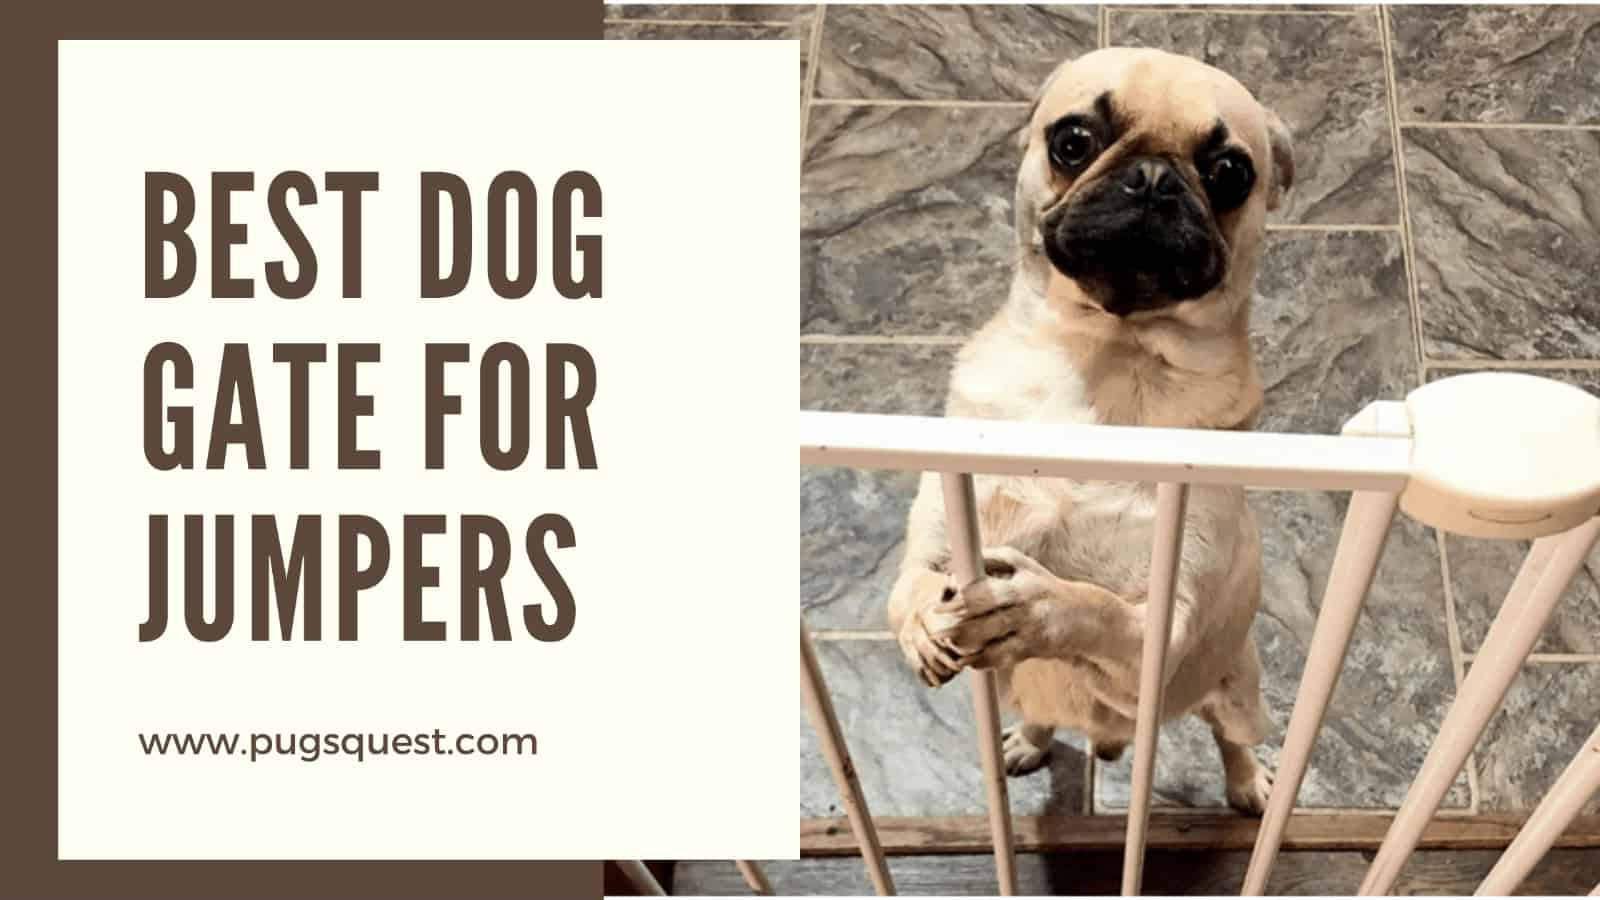 Best Dog Gate for Jumpers